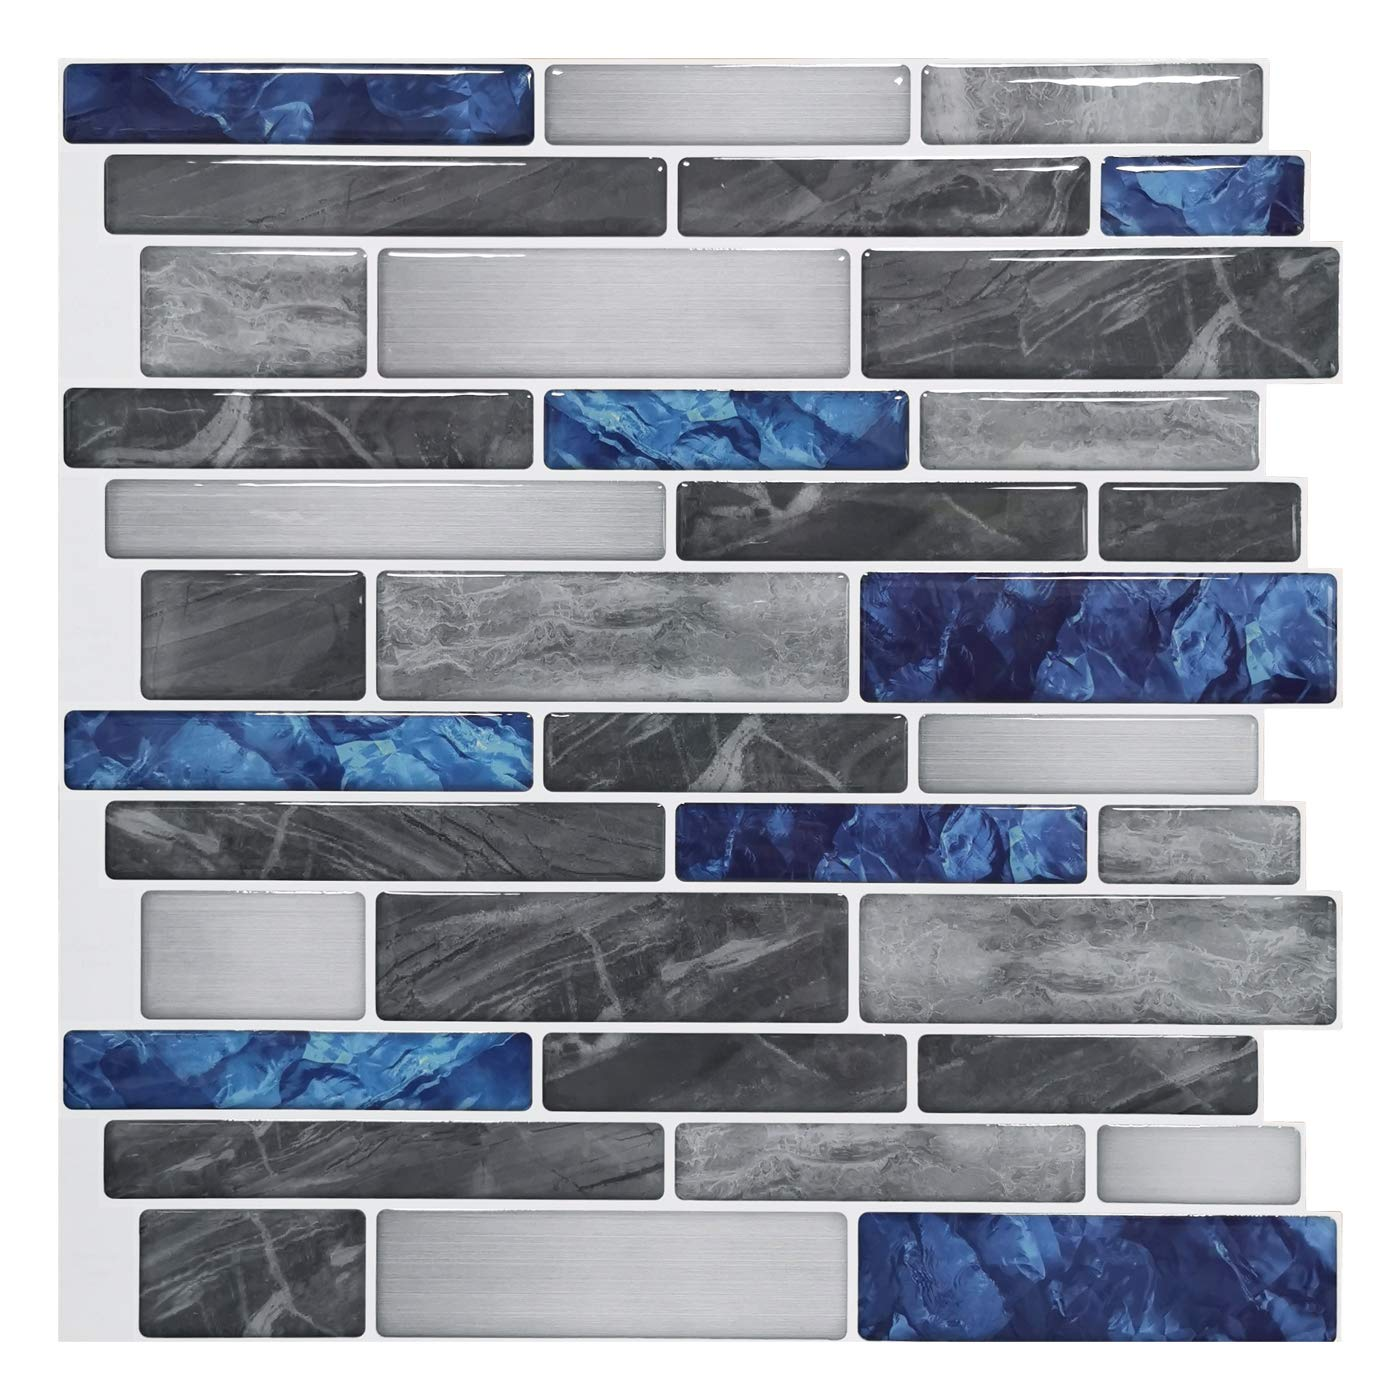 Art3d 10-Sheet Premium Self-Adhesive Kitchen Backsplash Tiles in Marble, 12''X12'' by Art3d